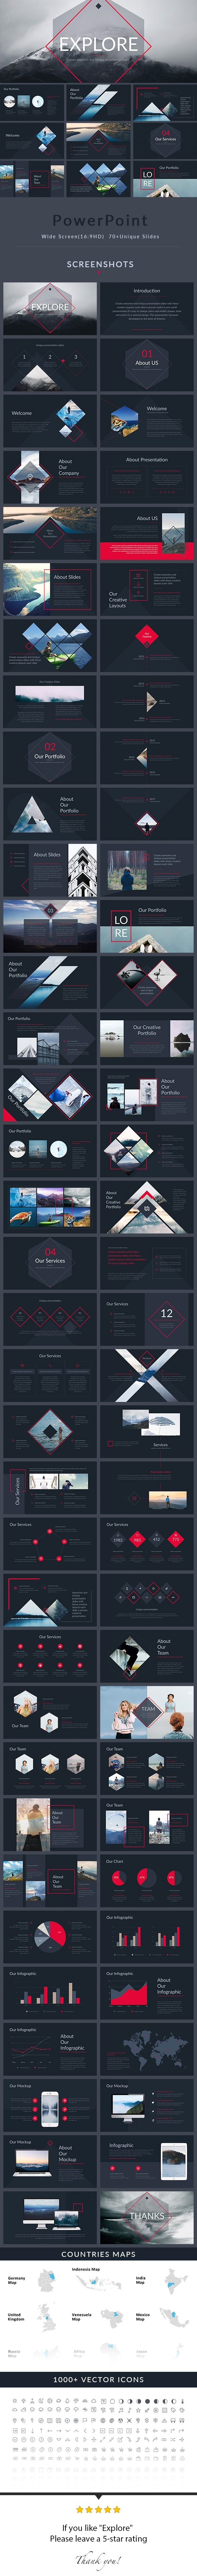 Explore - PowerPoint Presentation Template